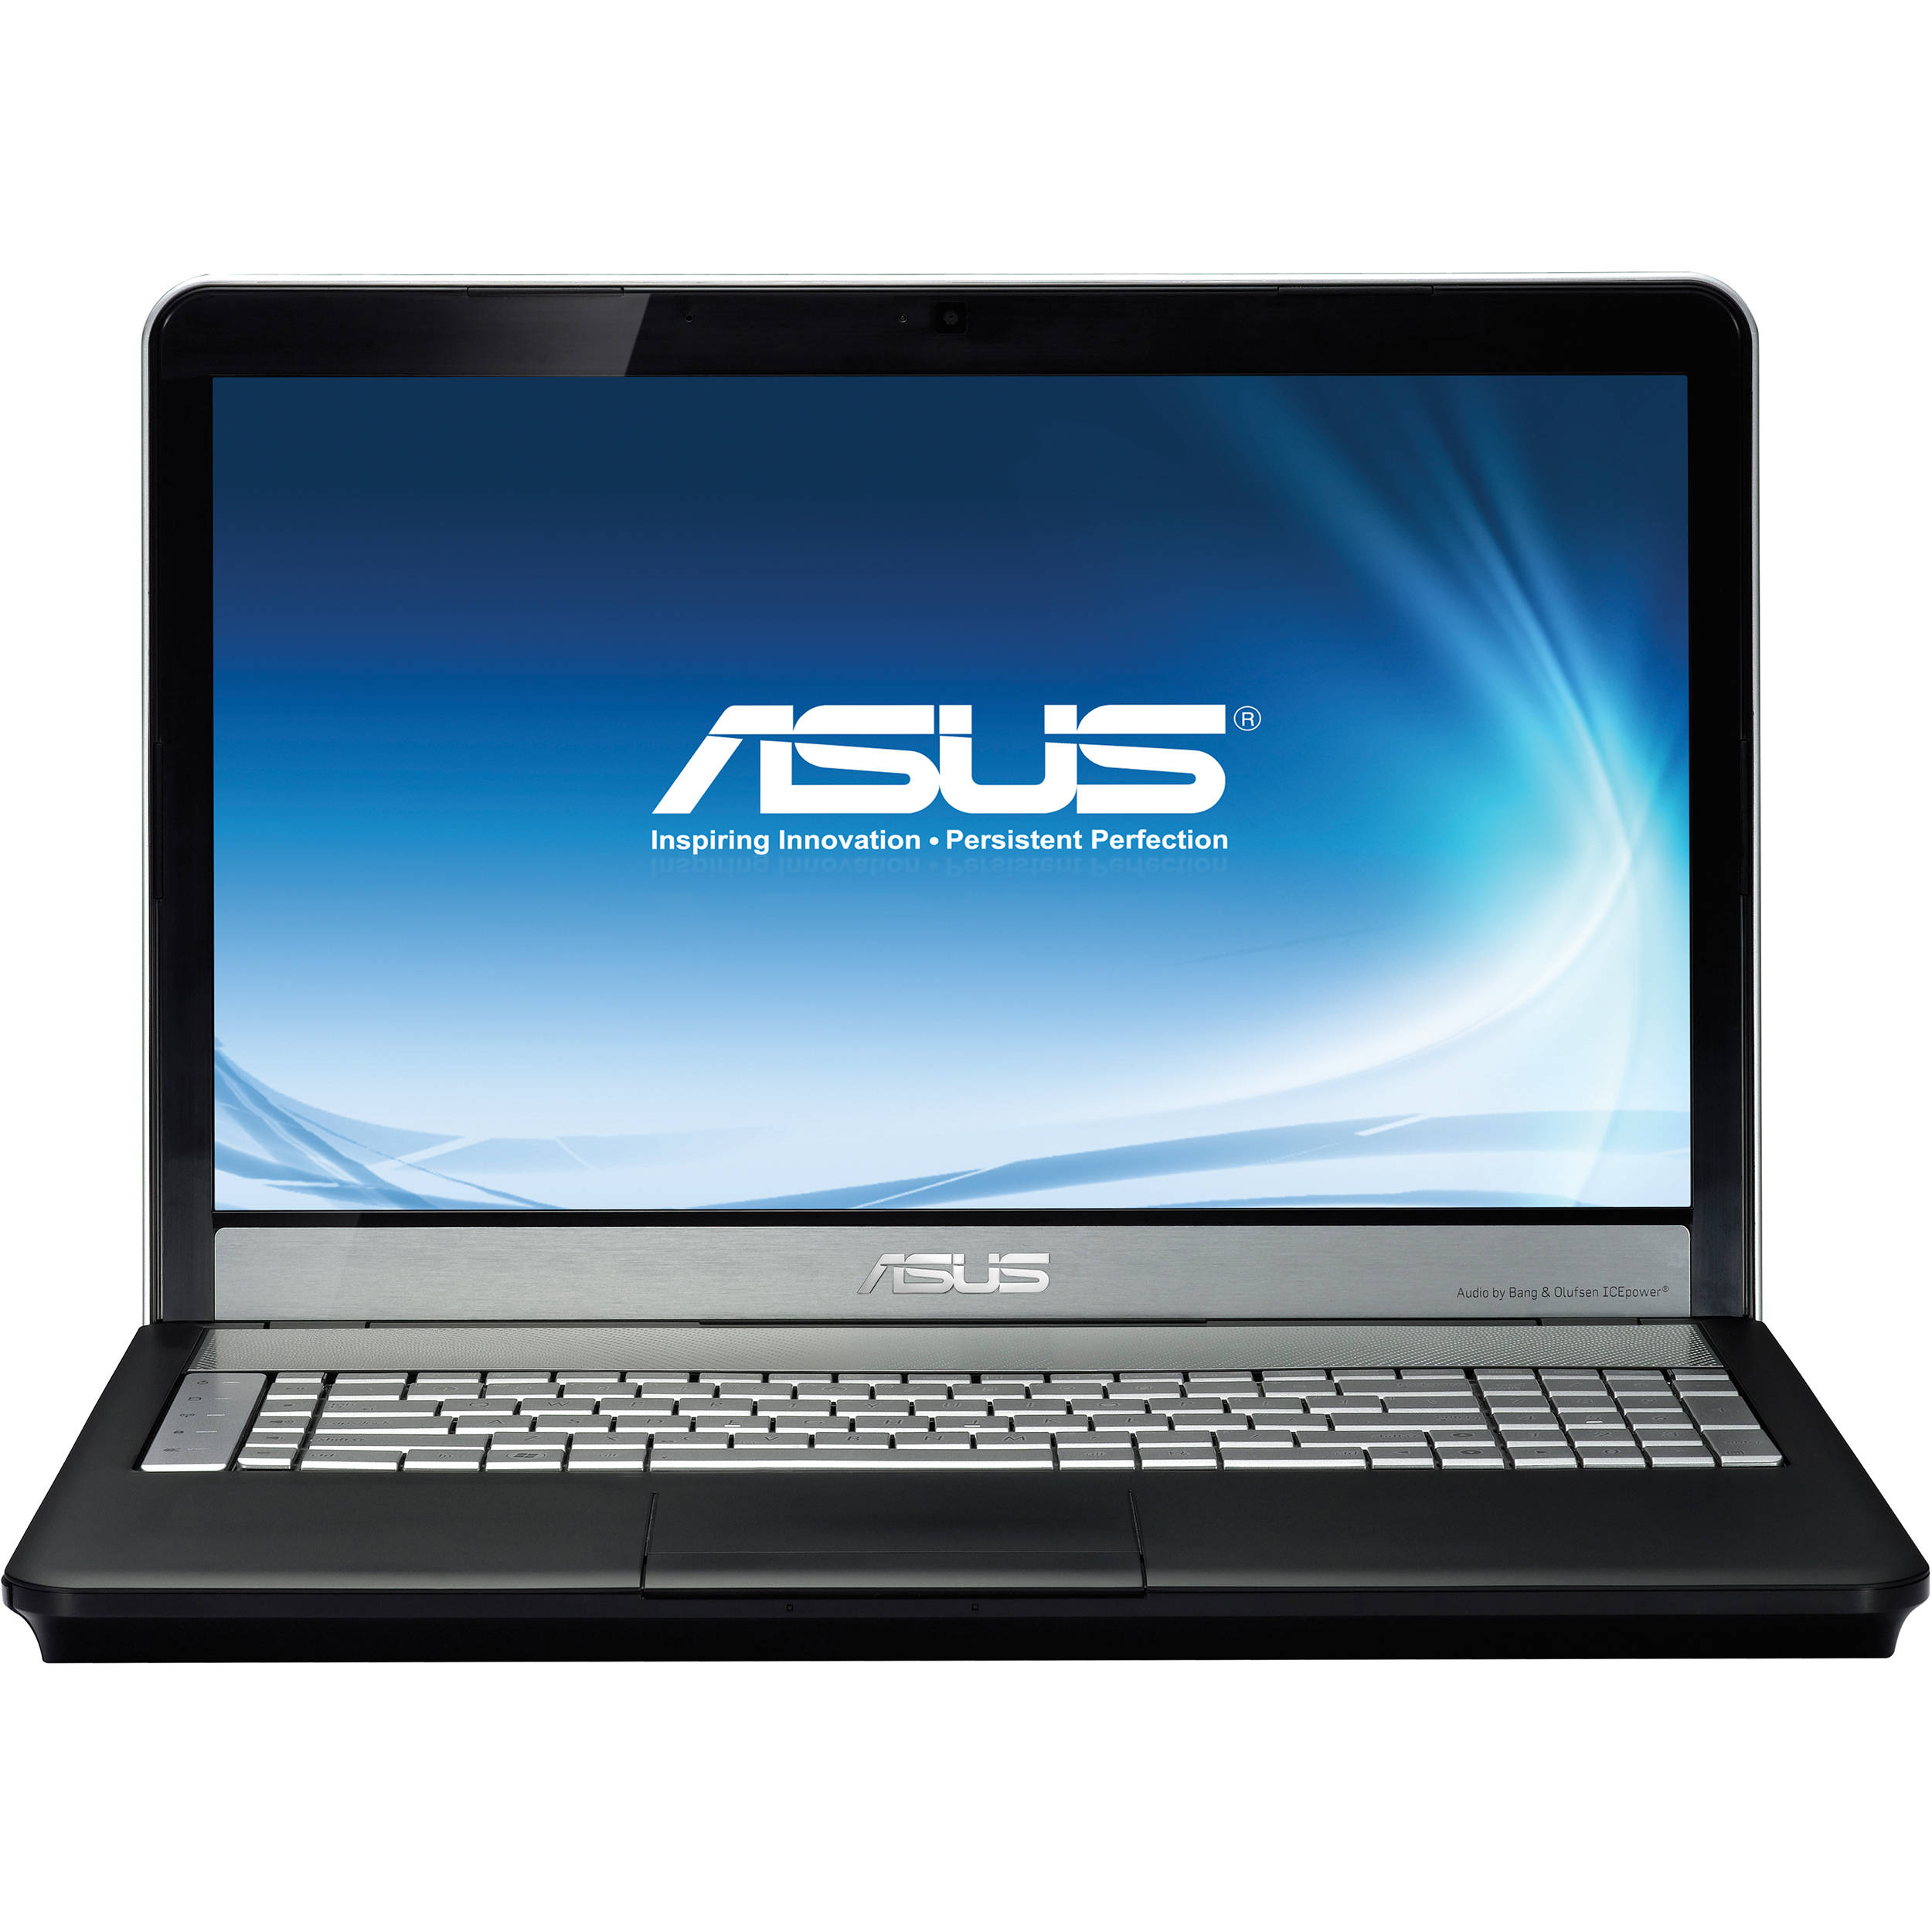 ASUS N43SM NOTEBOOK WIRELESS CONSOLE3 DRIVER